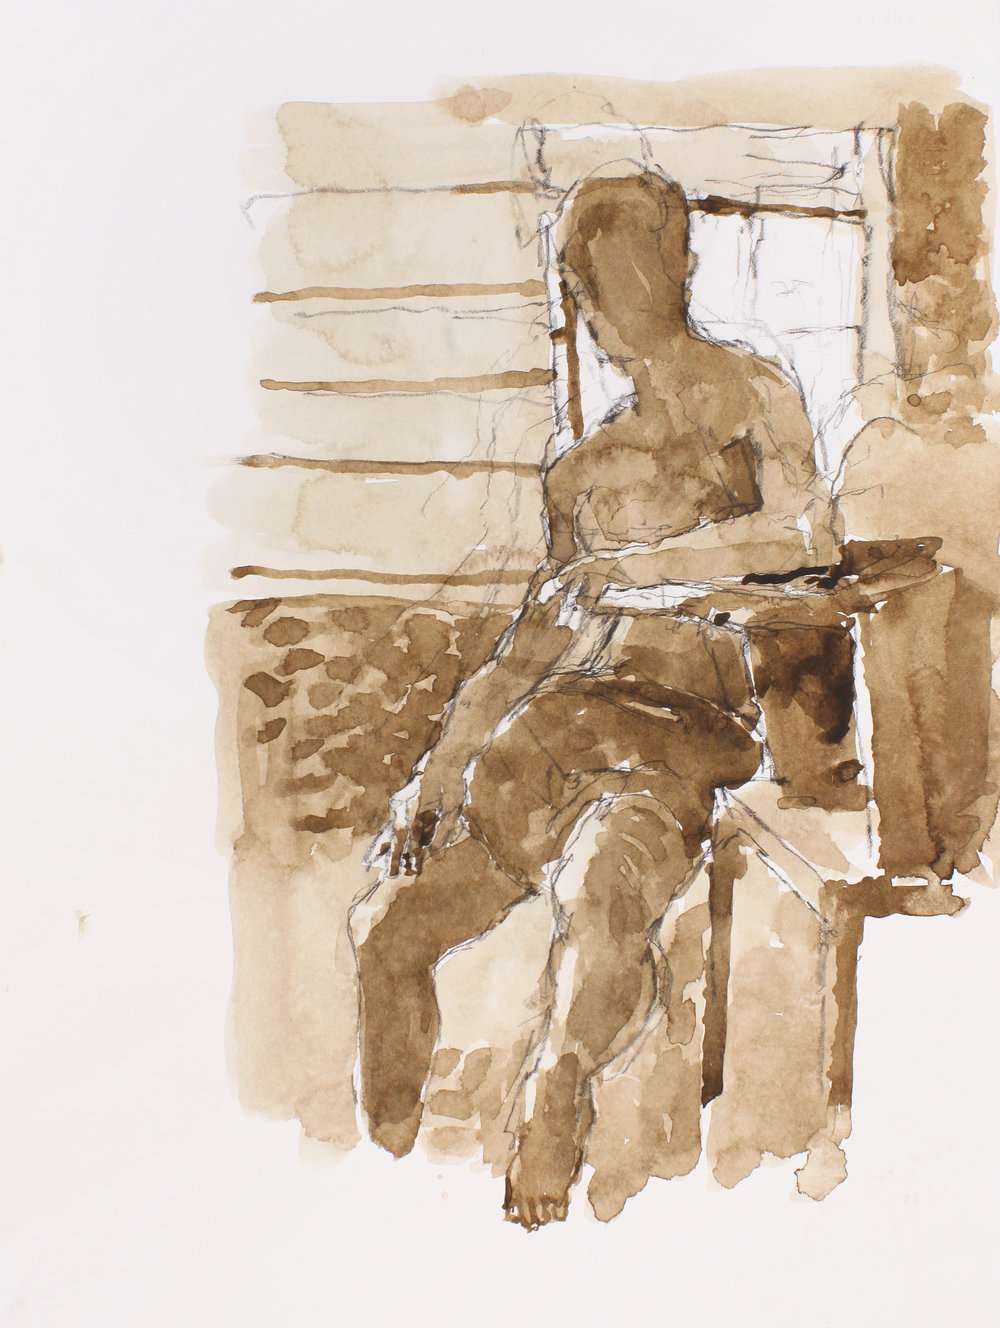 2001_Male_Figure_Seated_Beside_Press_watercolour_and_conte_on_paper_15x11in2001_Man_with_Press_Watercolour_and_conté_on_paper_15x11in_WPF145.jpg